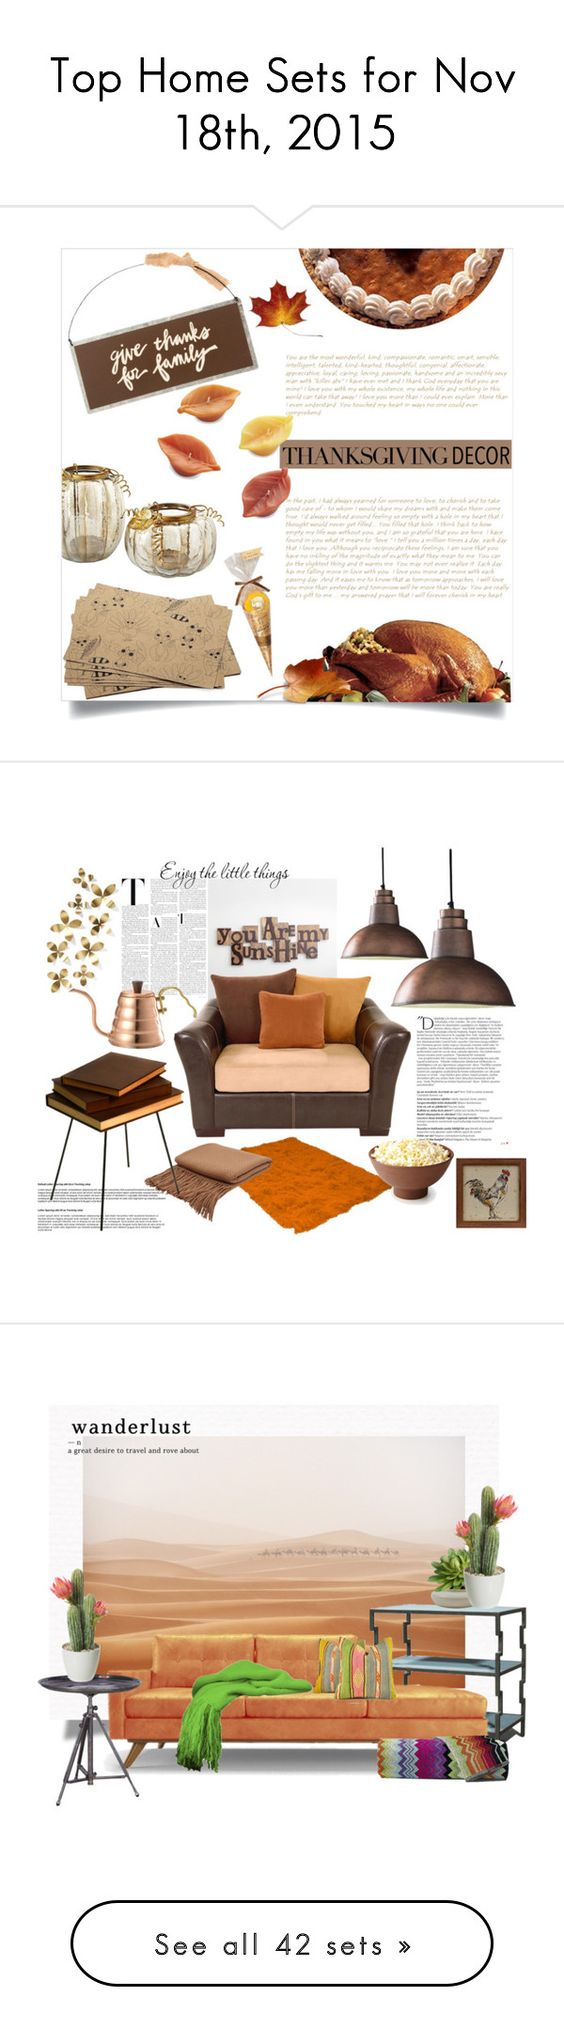 """""""Top Home Sets for Nov 18th, 2015"""" by polyvore ❤ liked on Polyvore featuring interior, interiors, interior design, home, home decor, interior decorating, Primitives By Kathy, Crate and Barrel, thanksgivingtable and Dot & Bo"""